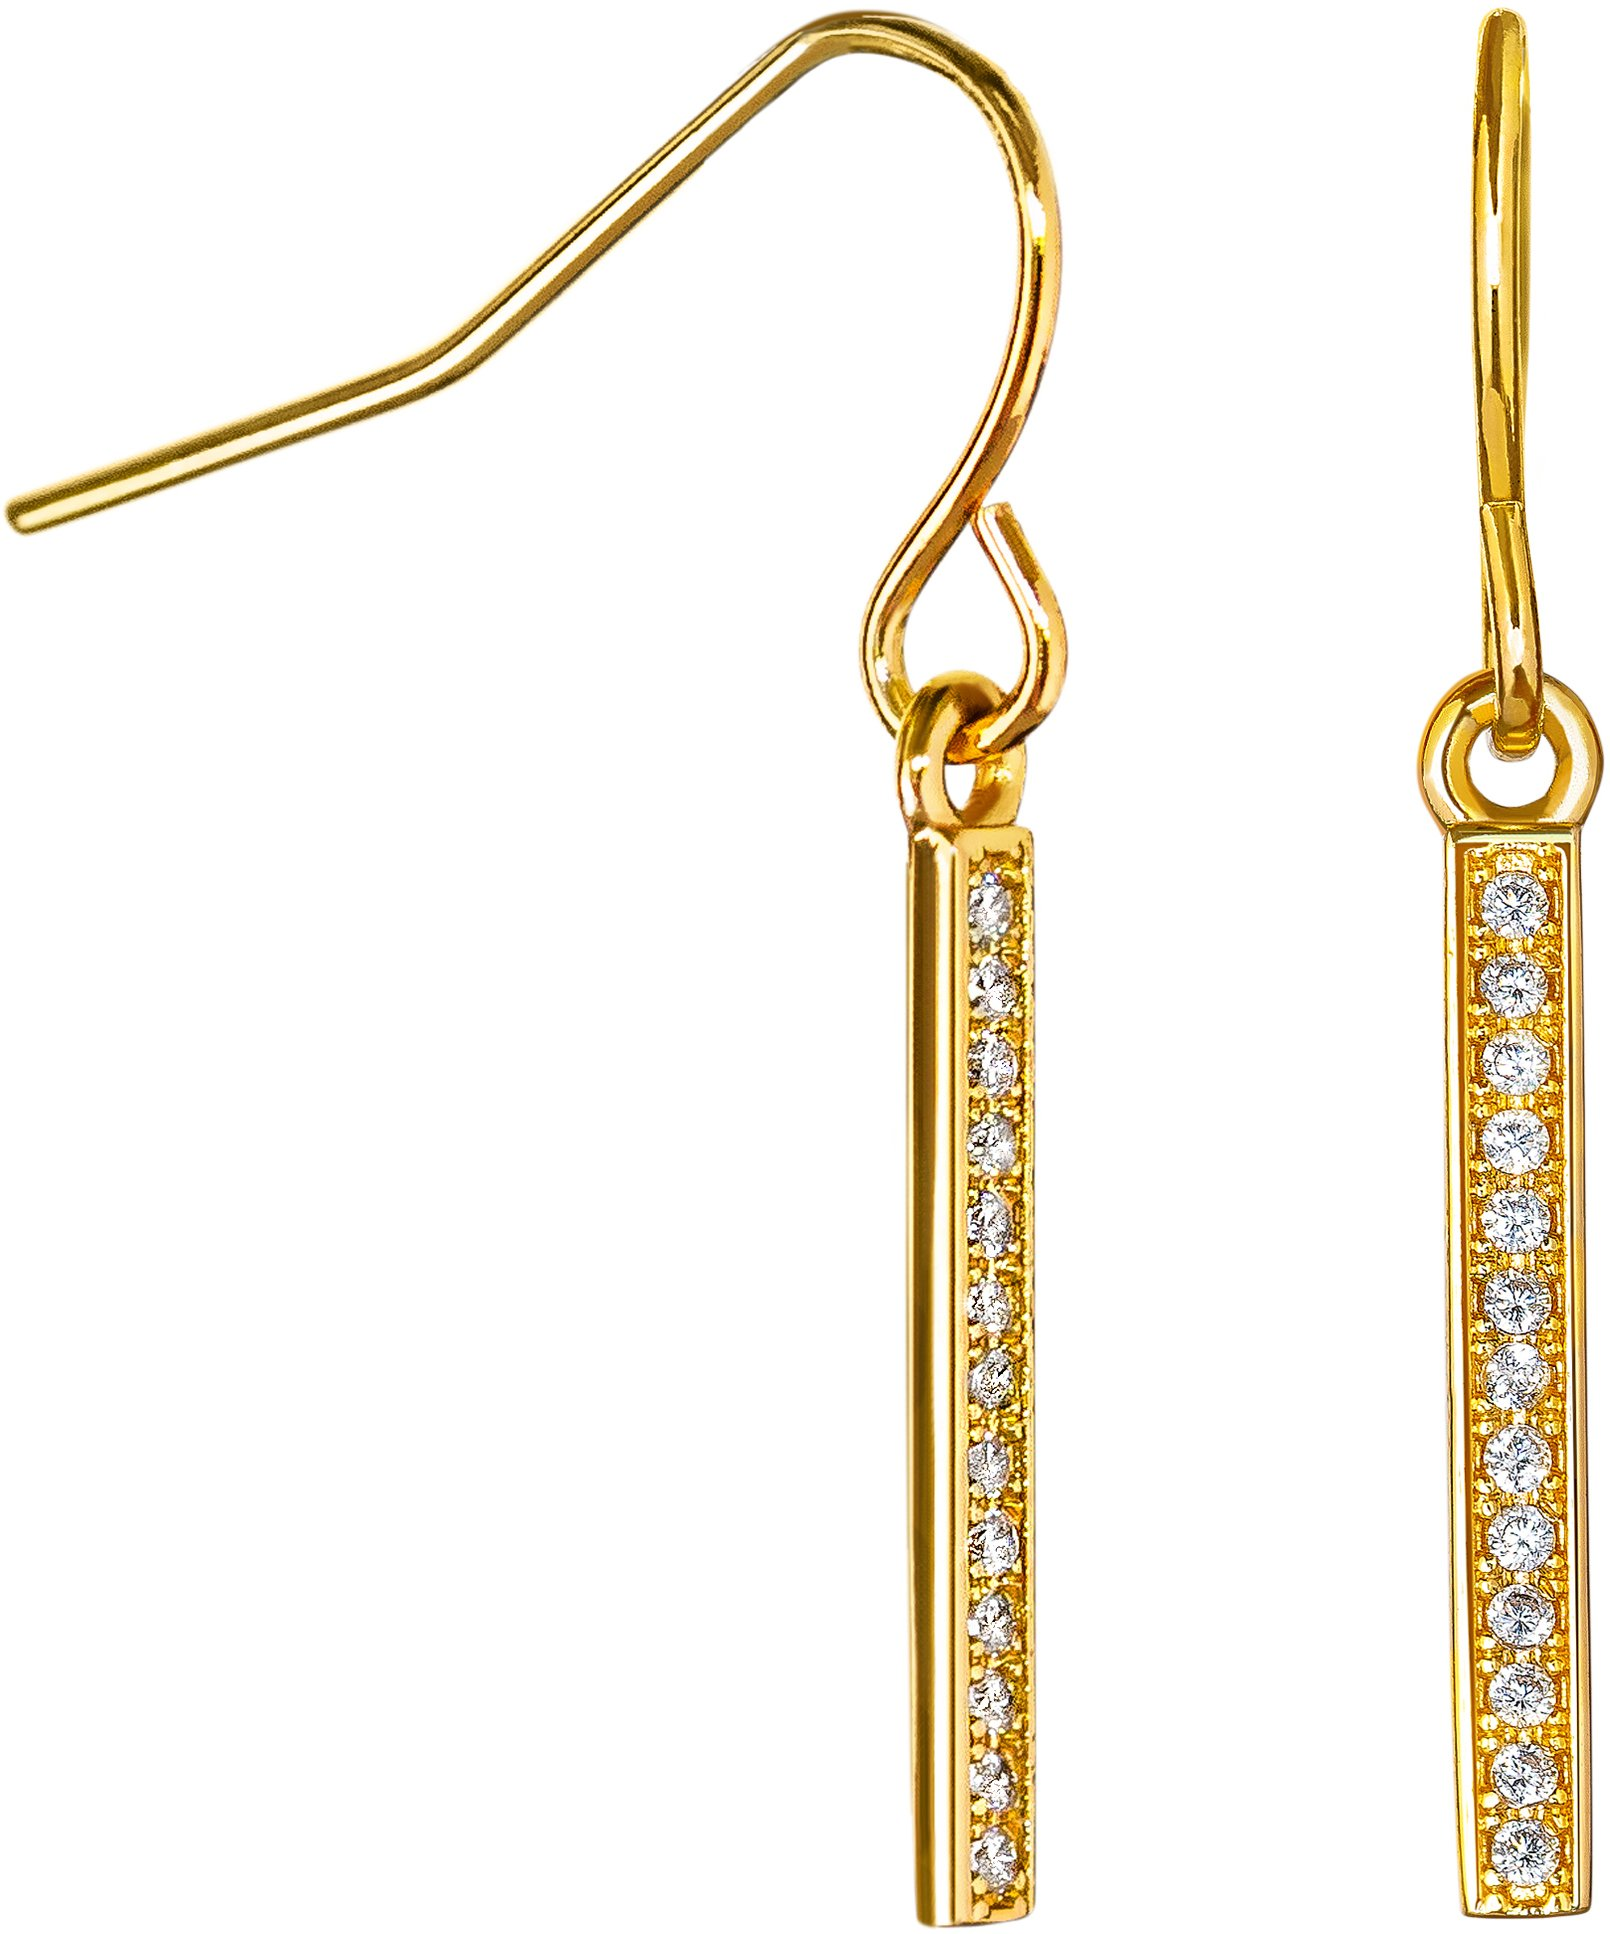 Dangle Earrings Cubic Zirconia: 14k Gold Plated with CZ Vertical Bar Earring for Women Girls Teens